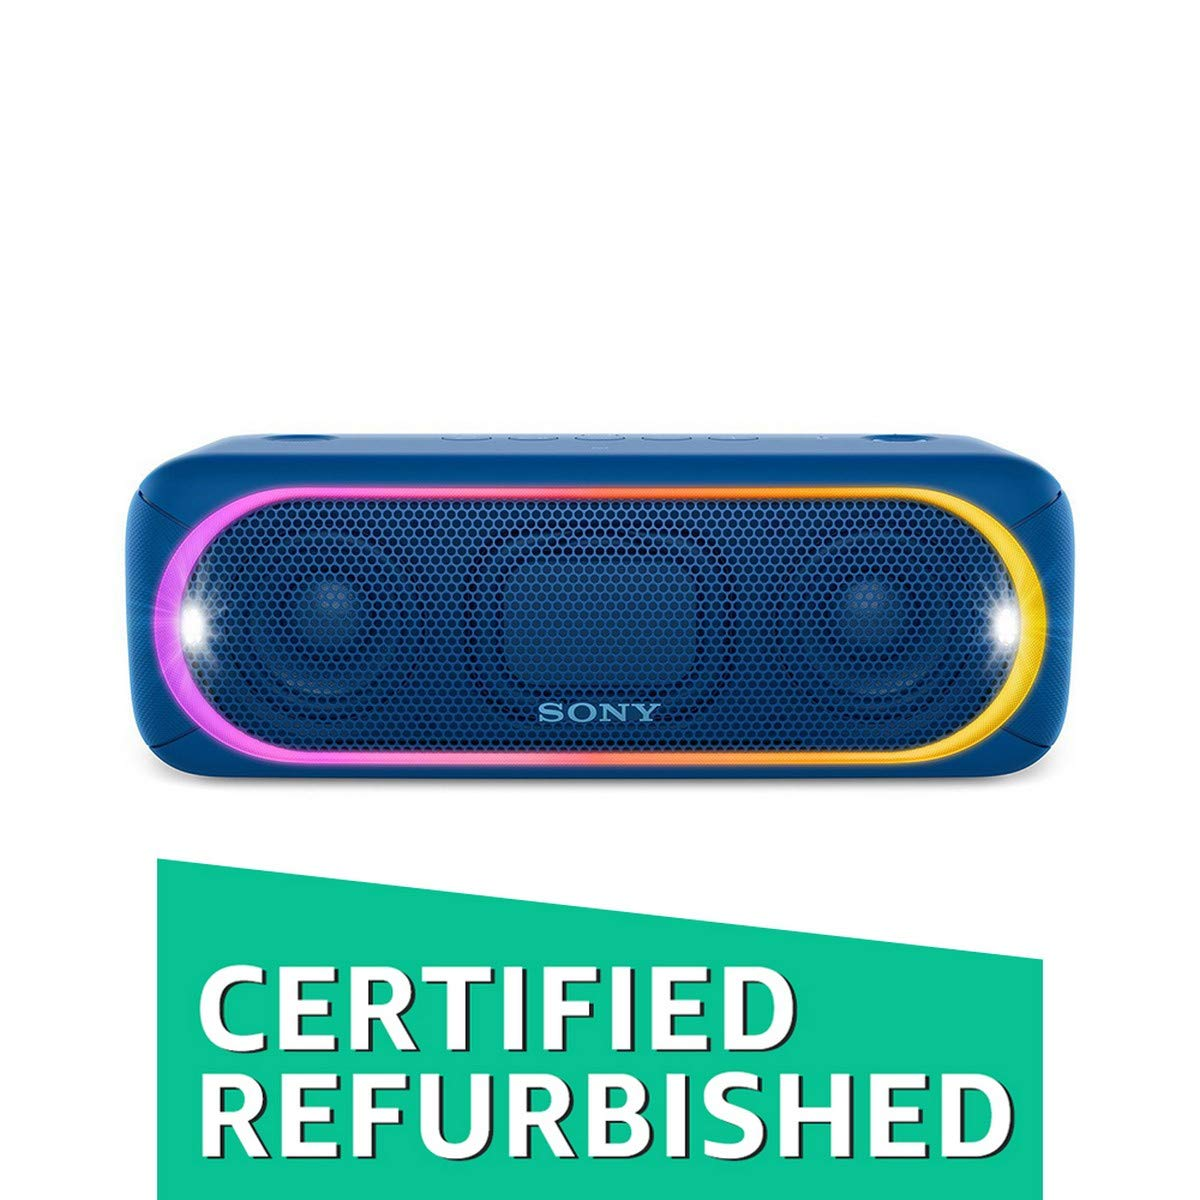 (Certified REFURBISHED) Sony SRS-XB30/LC-IN5 Portable